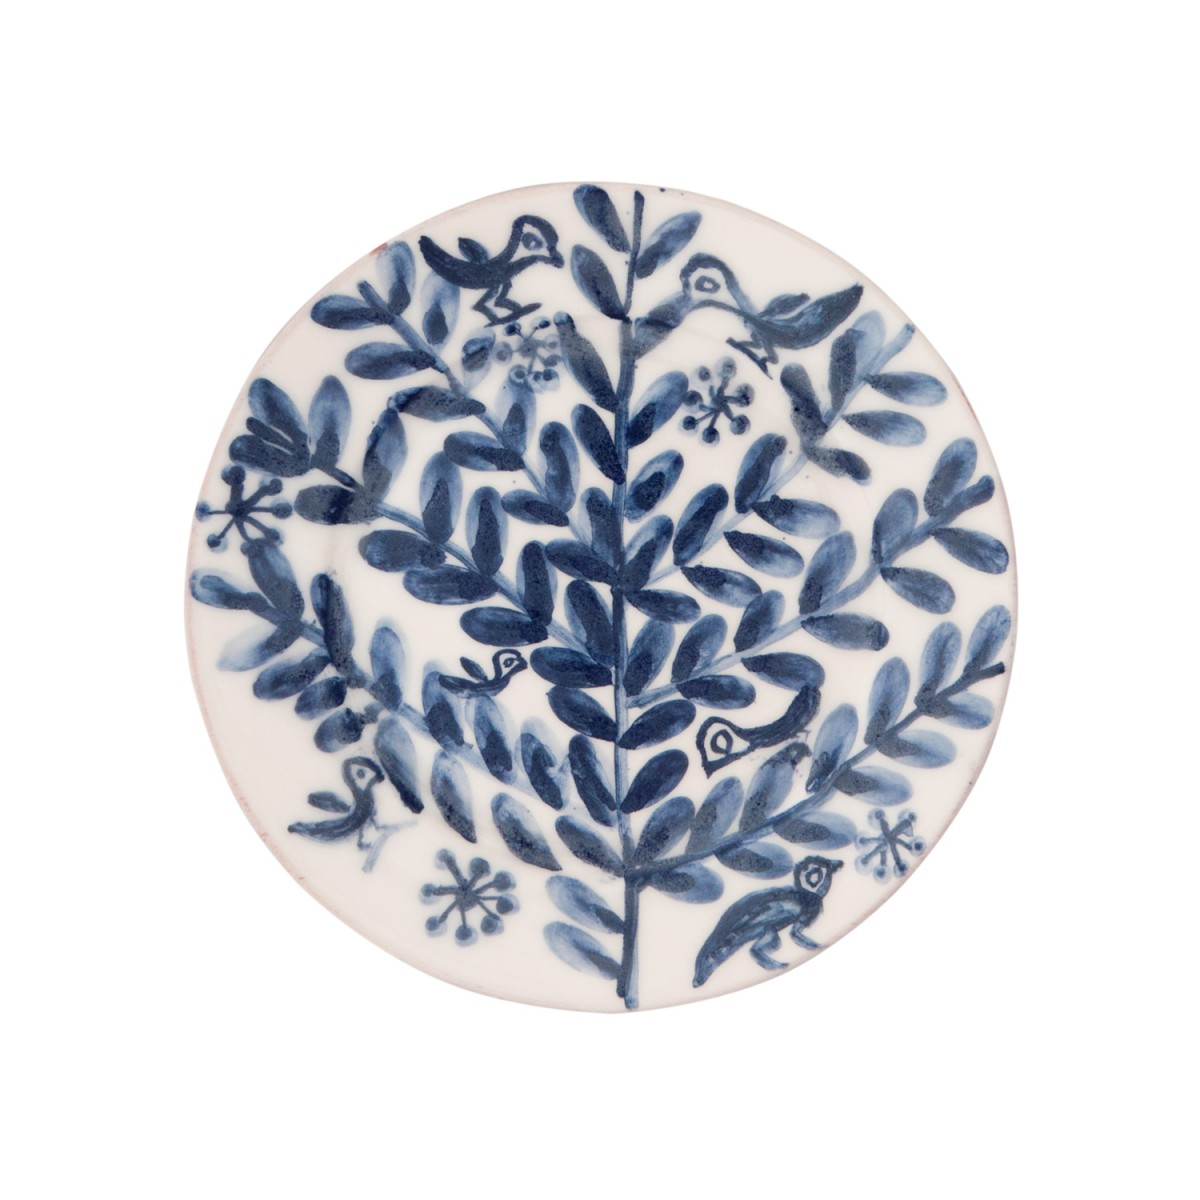 Decorative Blue and White Plates - Tree with Birds-1